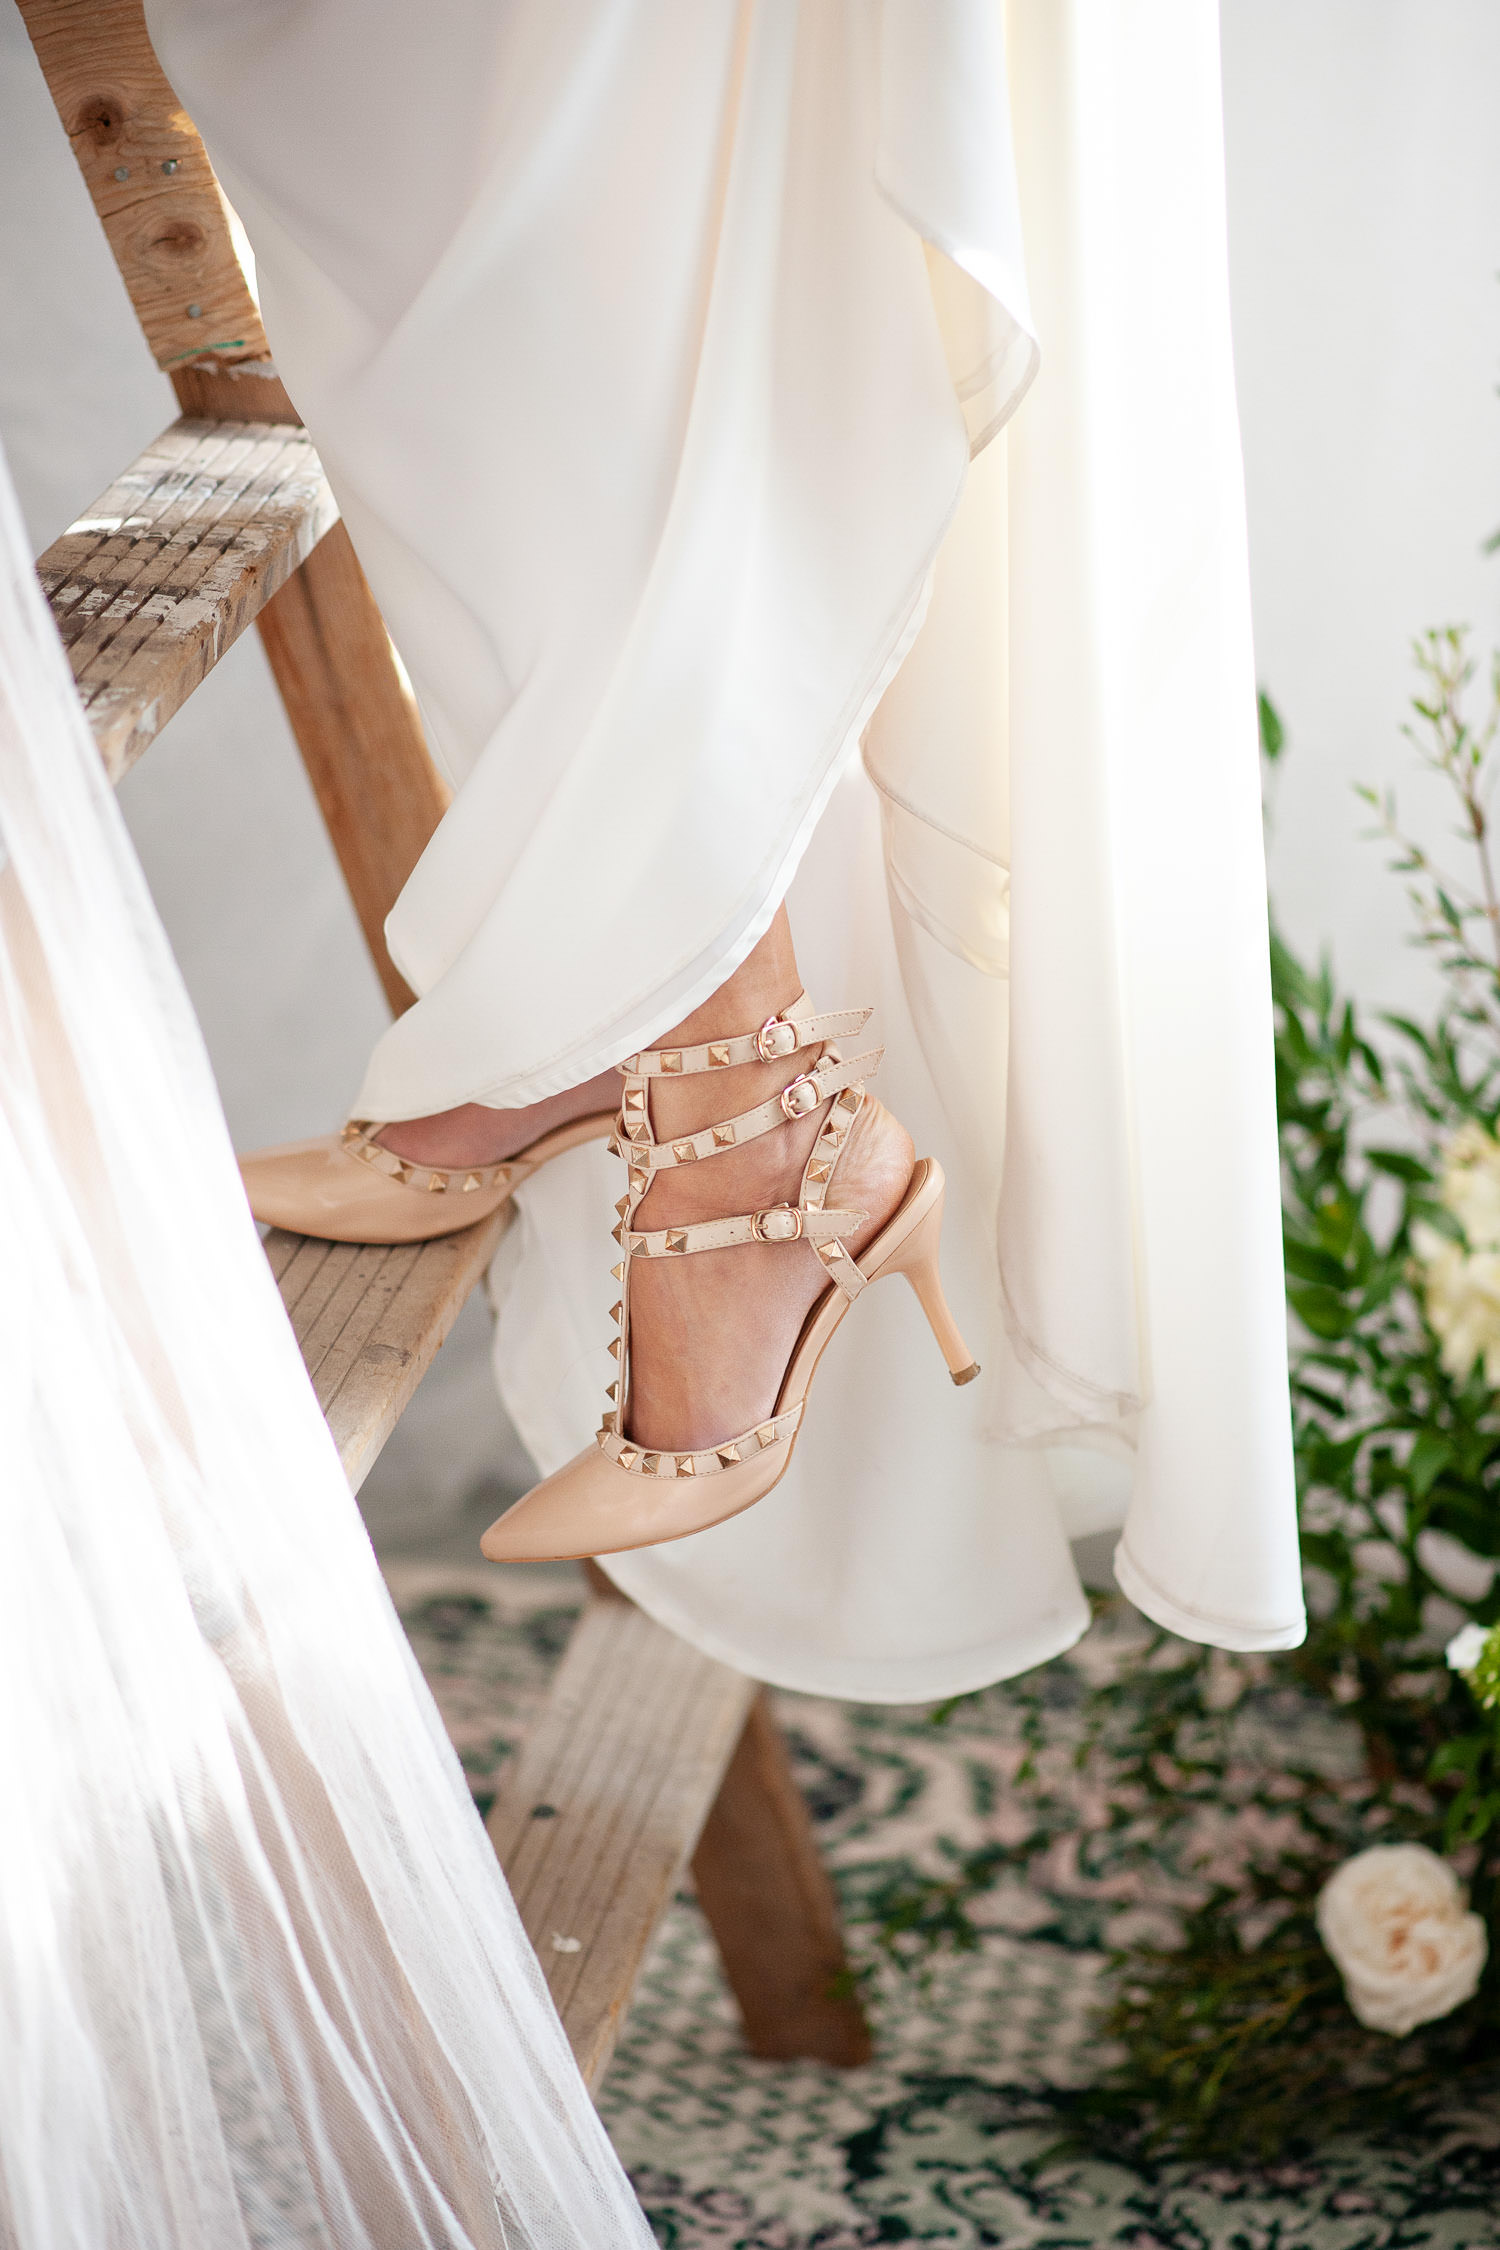 the bride's Valentino shoes captured by Tara Whittaker Photography